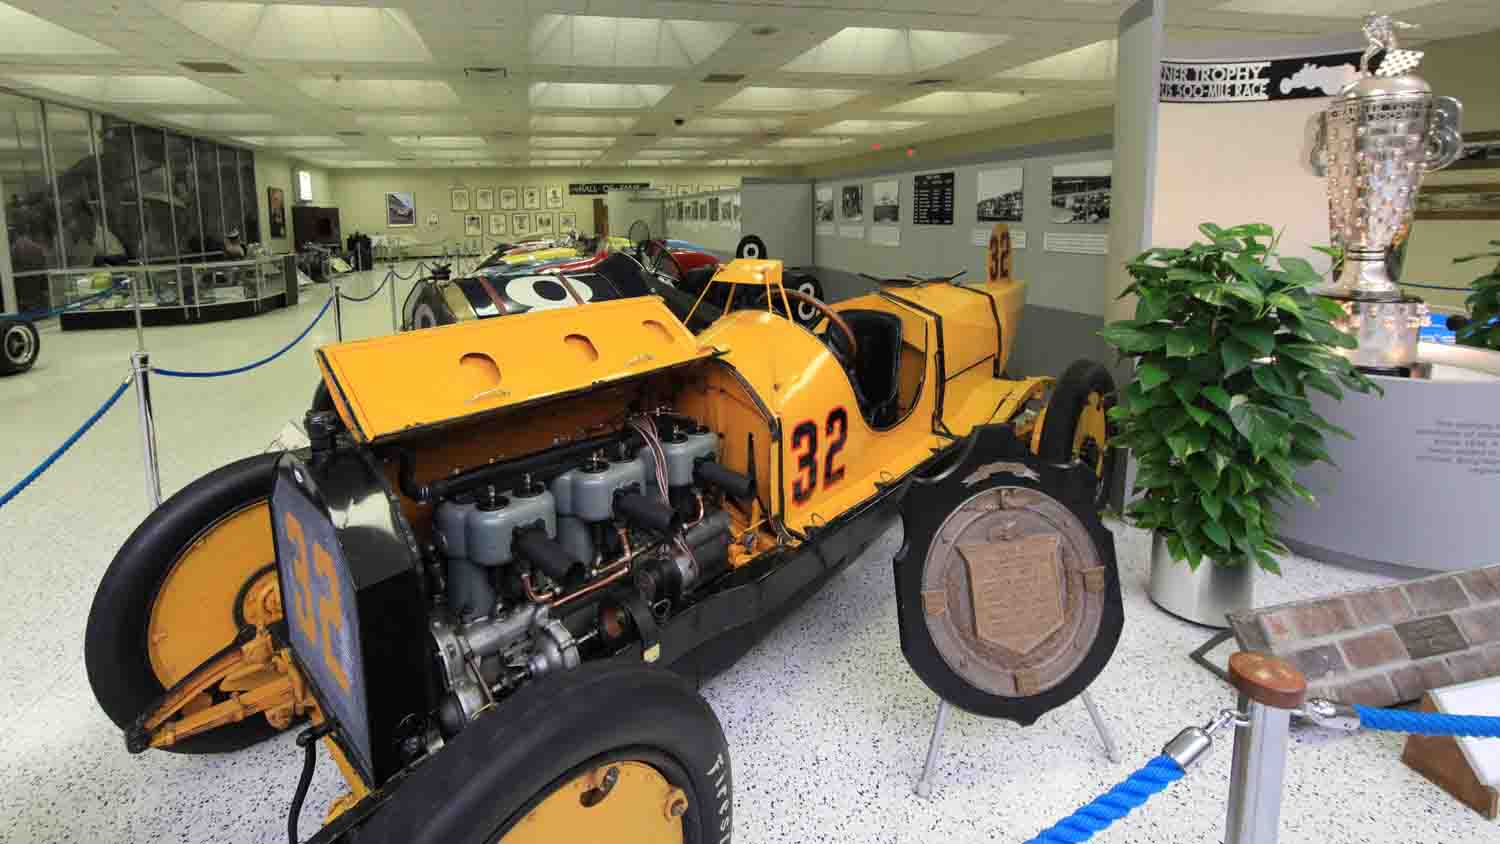 Indianapolis Motor Speedway Hall of Fame Museum 1